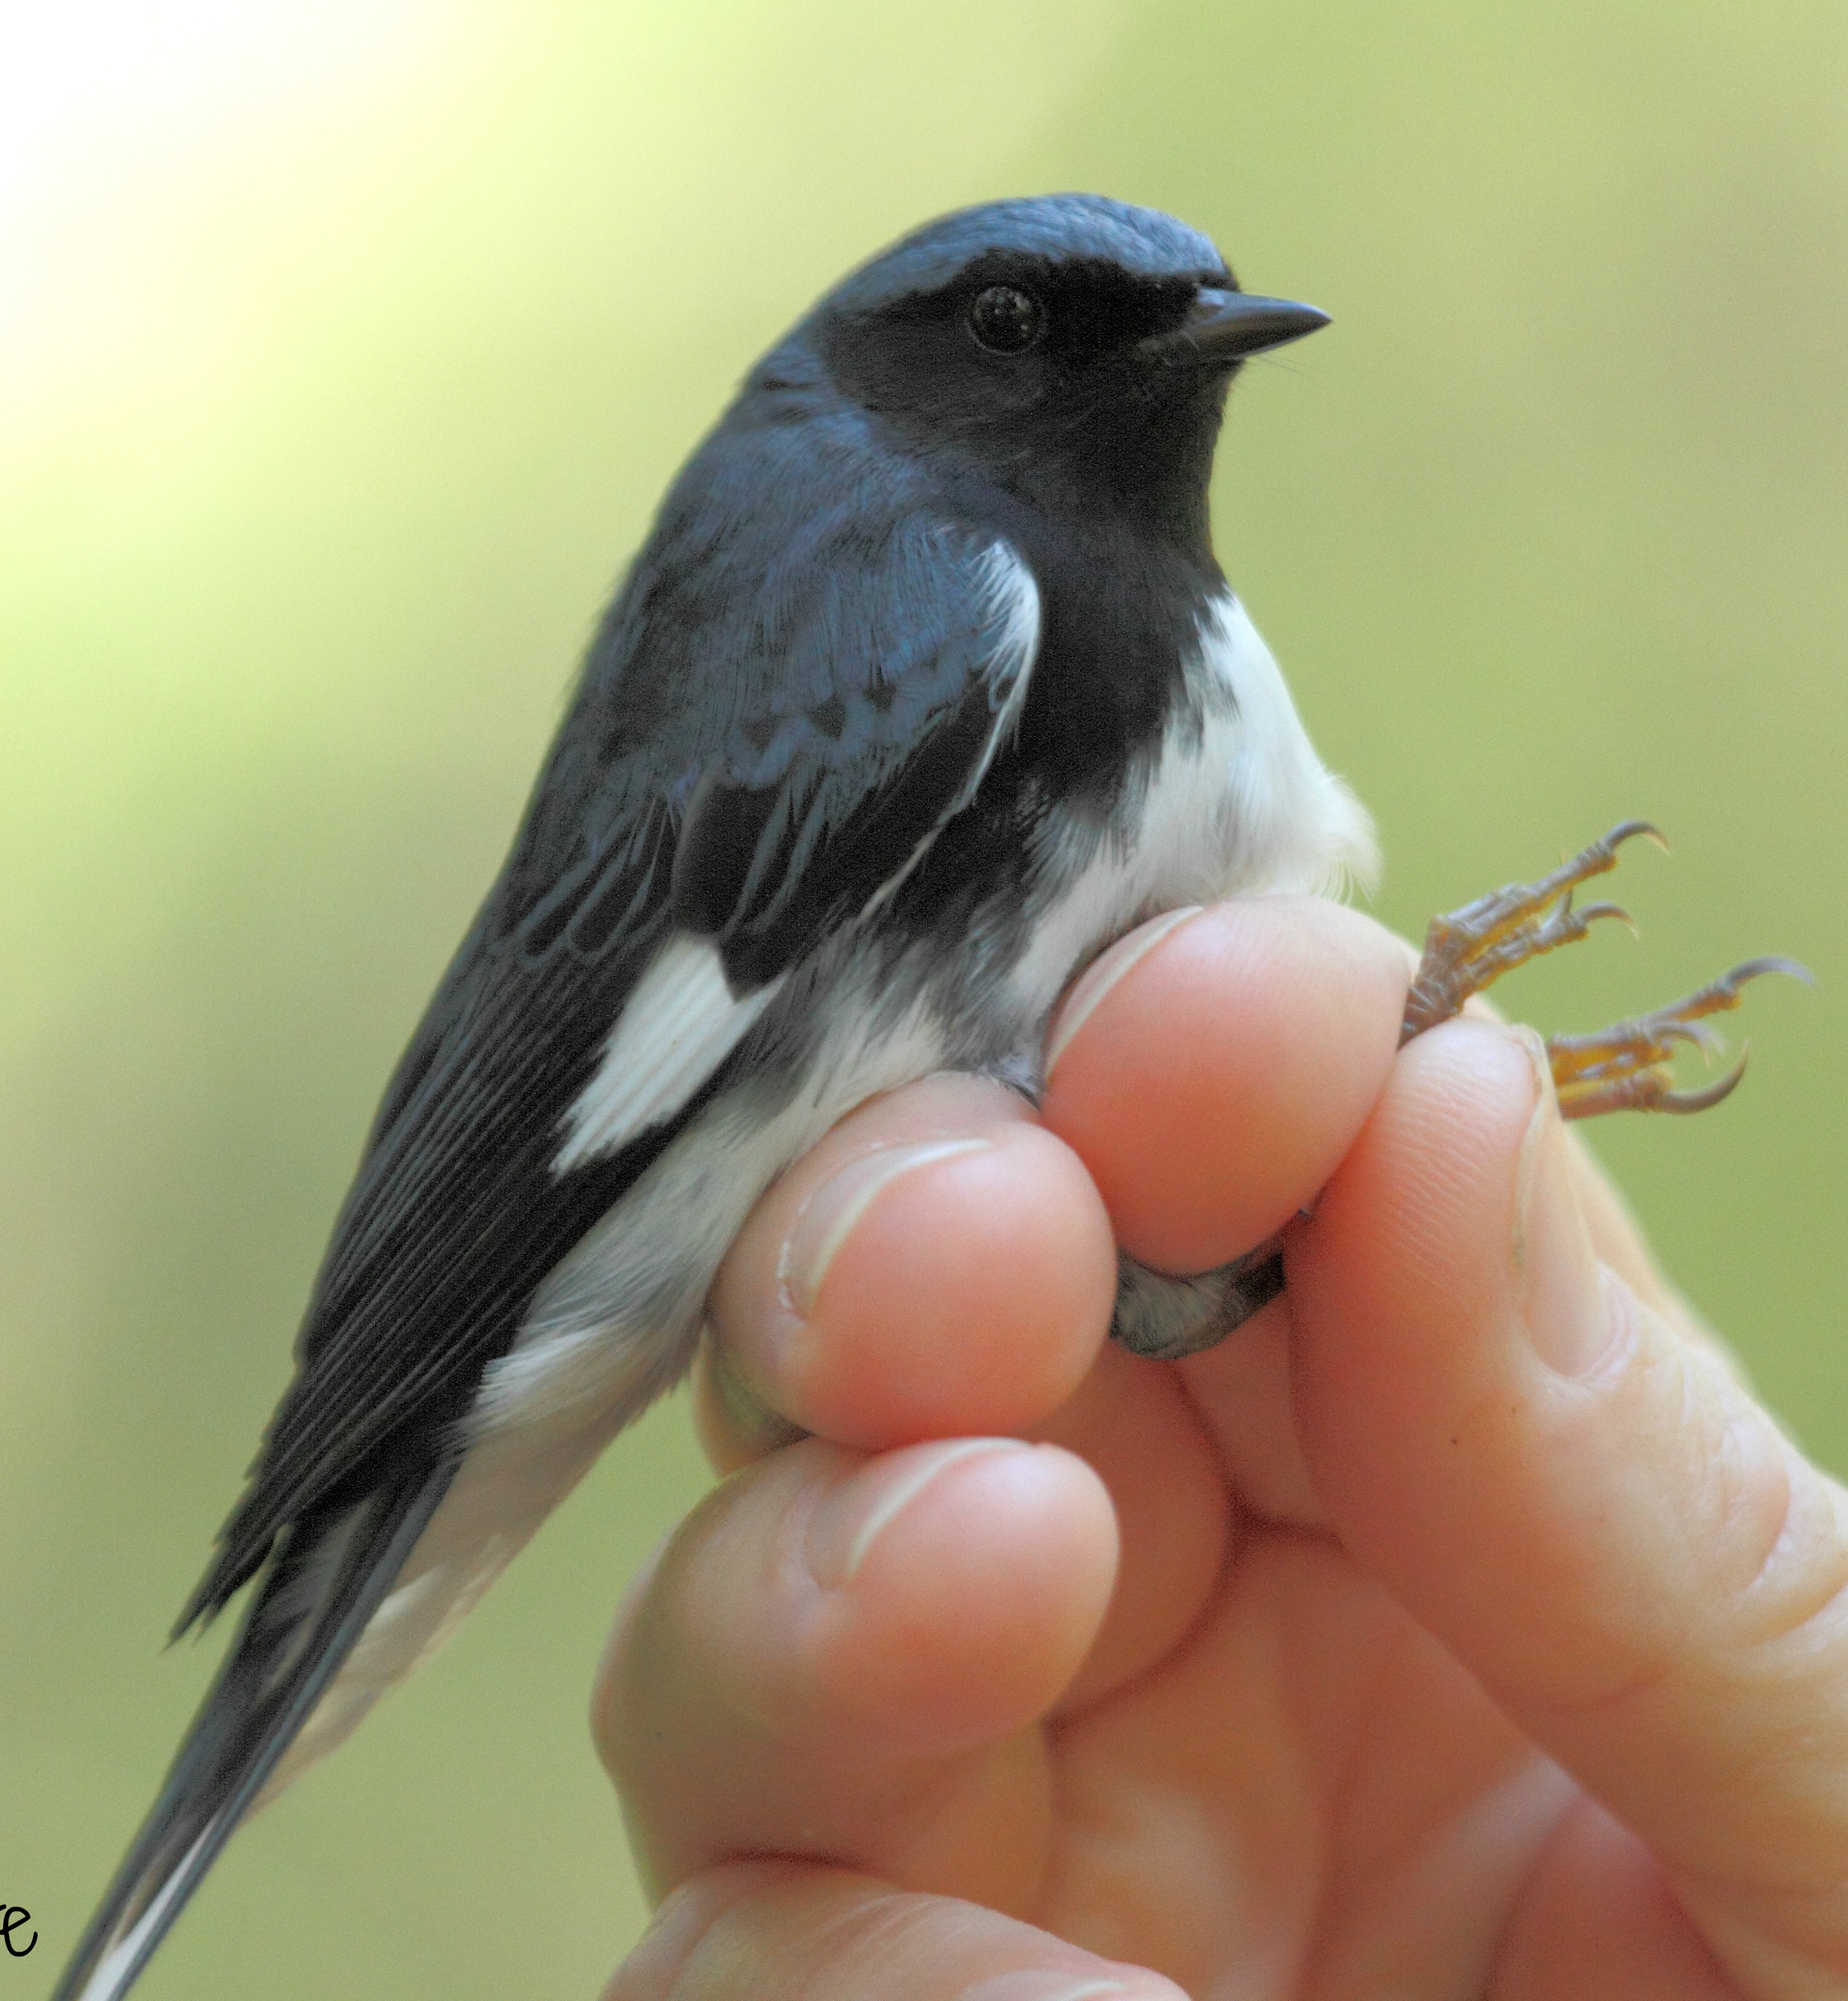 A black-throated blue warbler (Setophaga caerulescens) captured at the park before being banded.